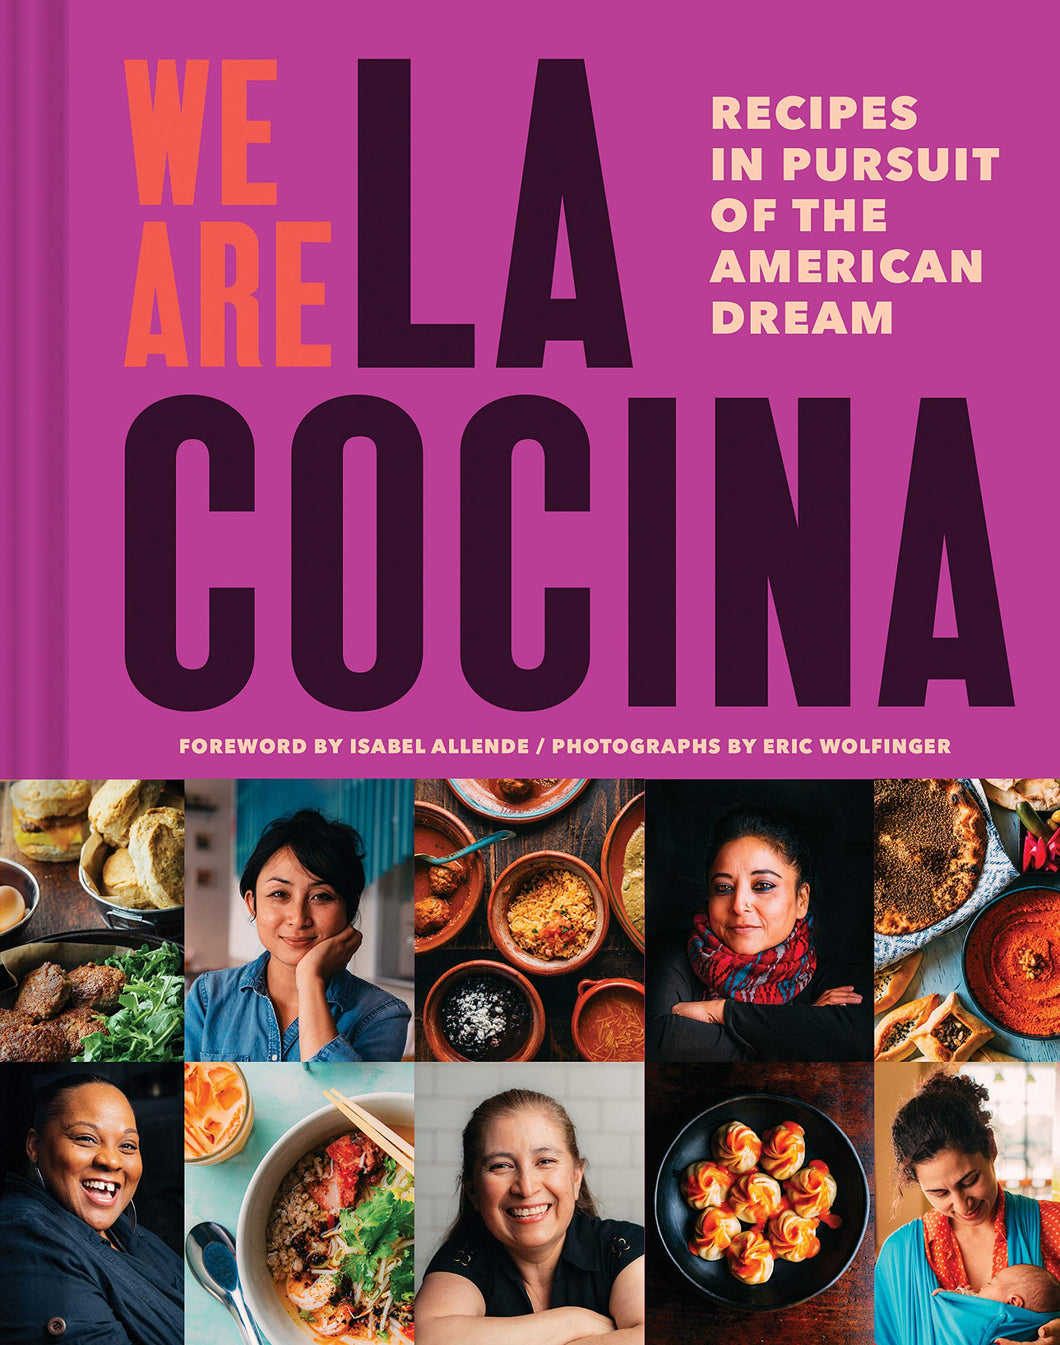 We Are La Cocina: Recipes in Pursuit of the American Dream by Caleb Zigas and Leticia Landa